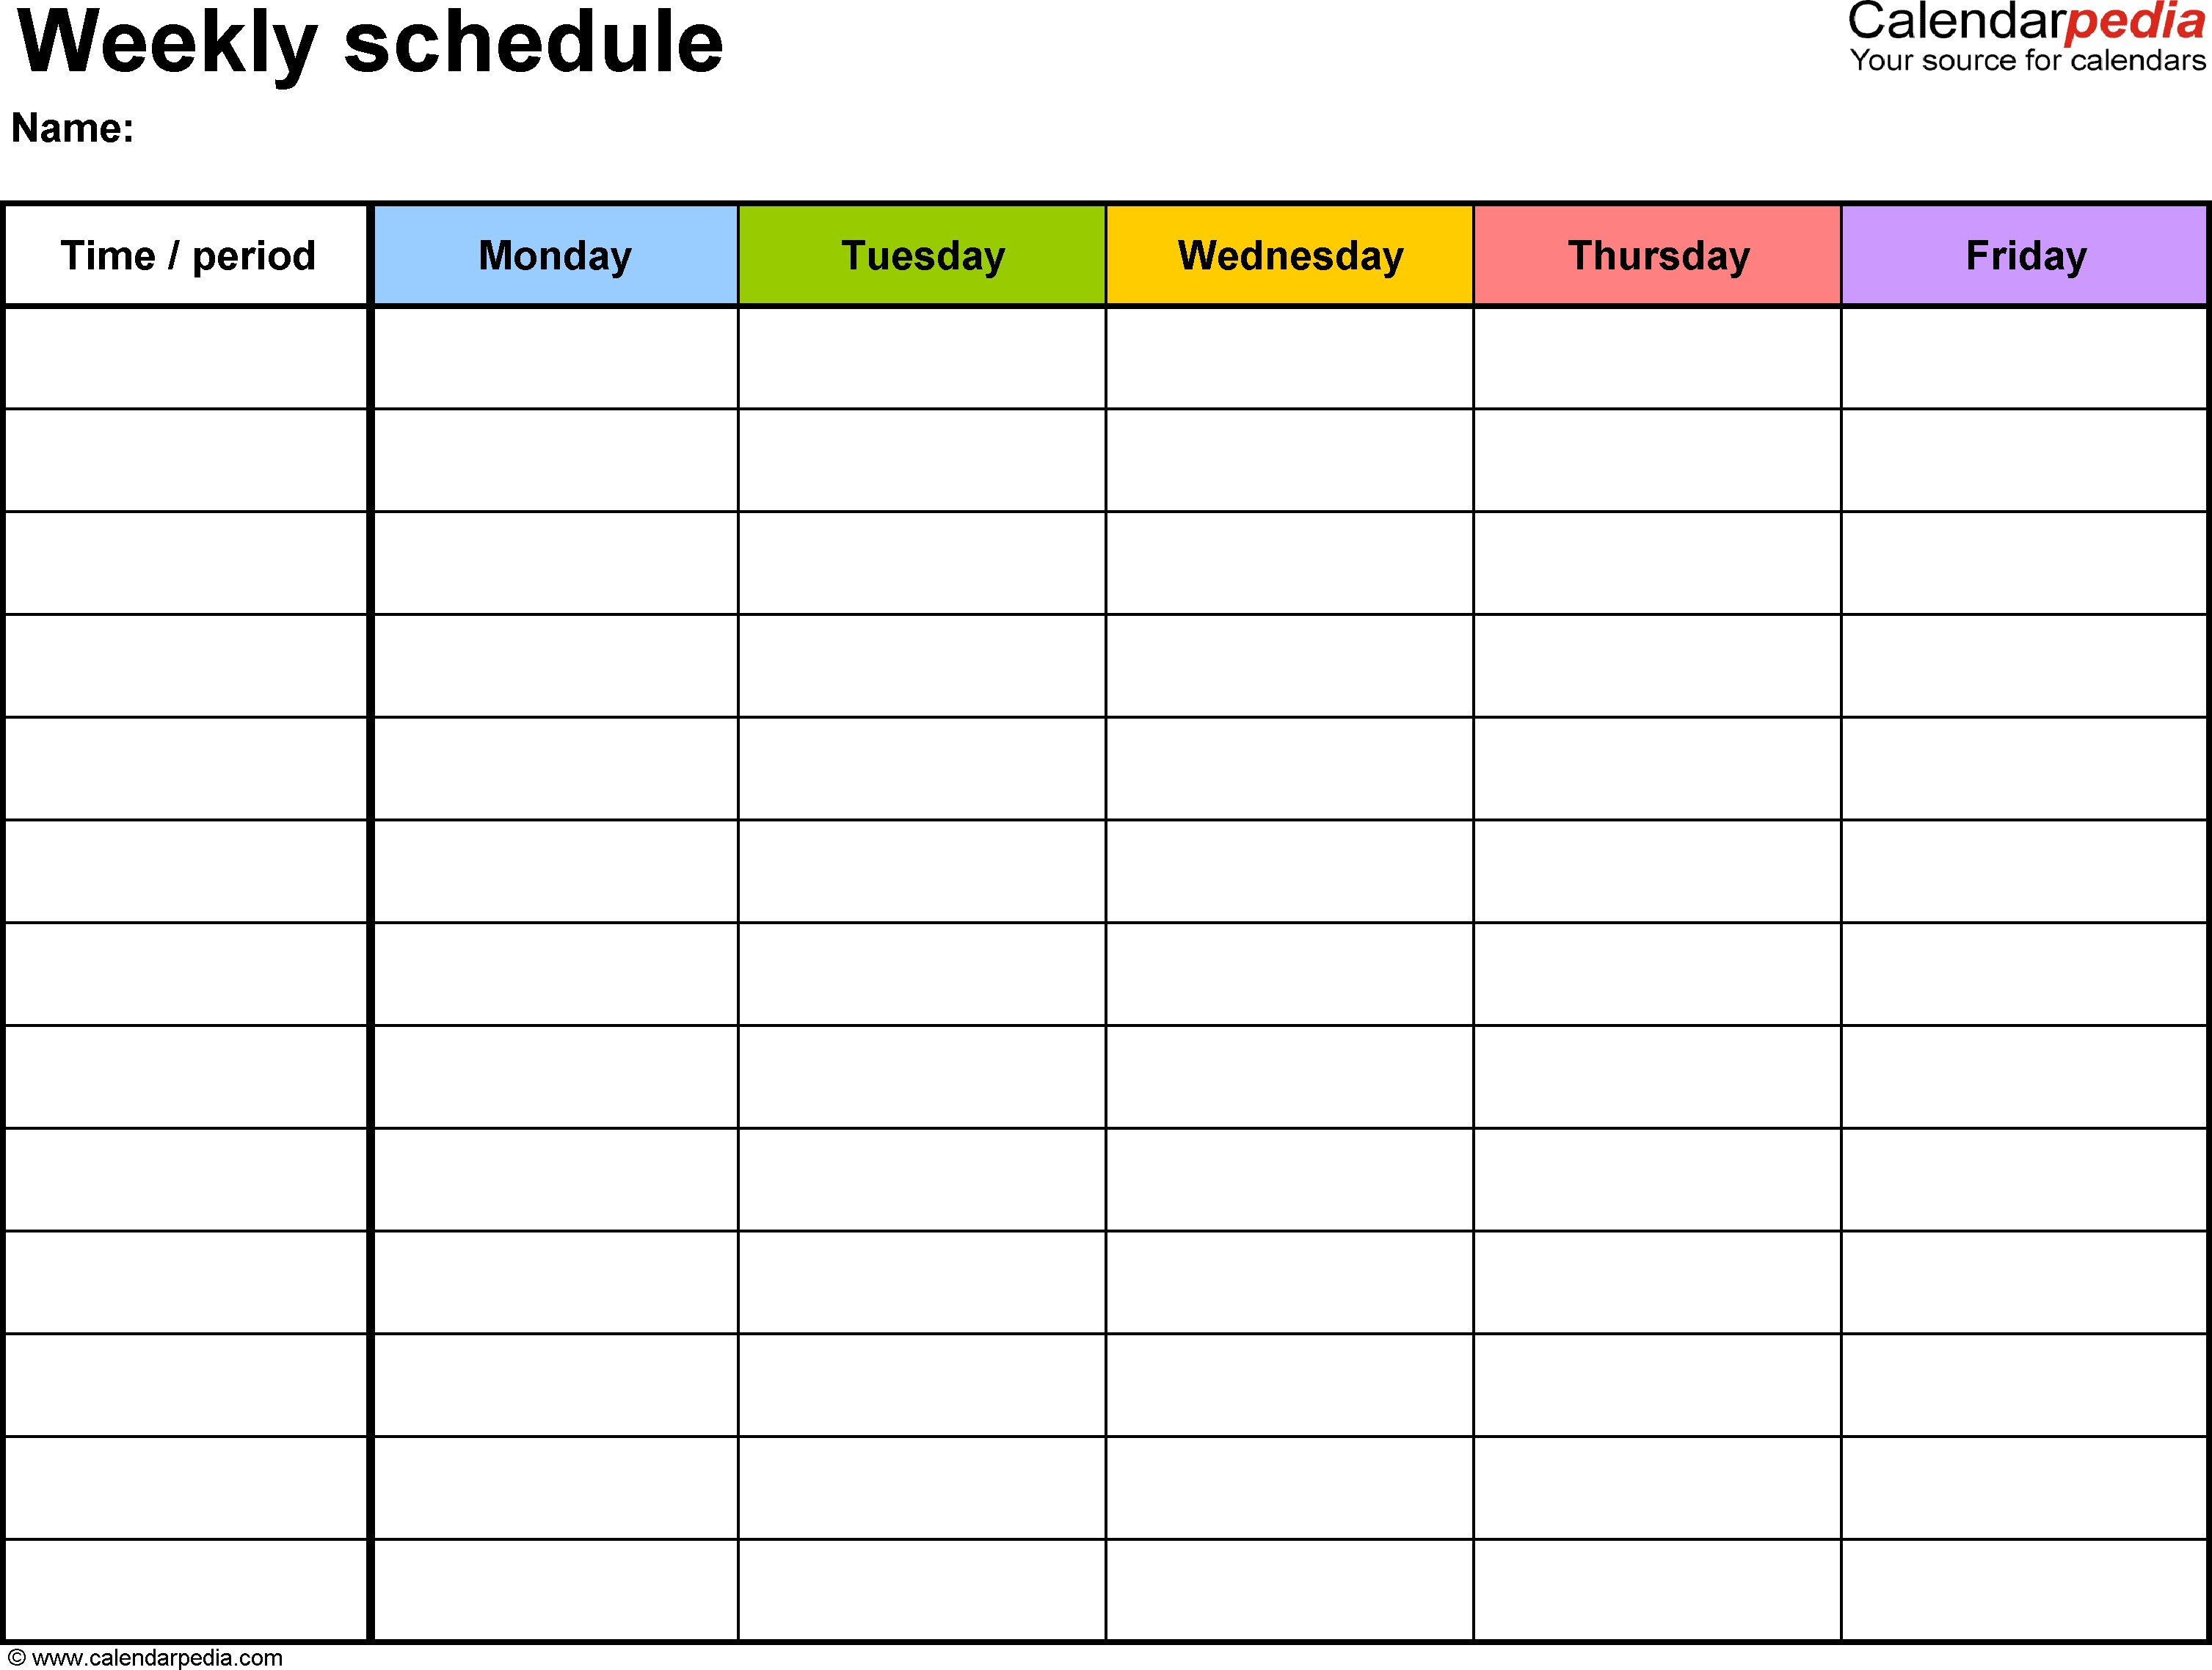 Free Weekly Schedule Templates For Word - 18 Templates inside Free Printable Blank Weekly Calendars